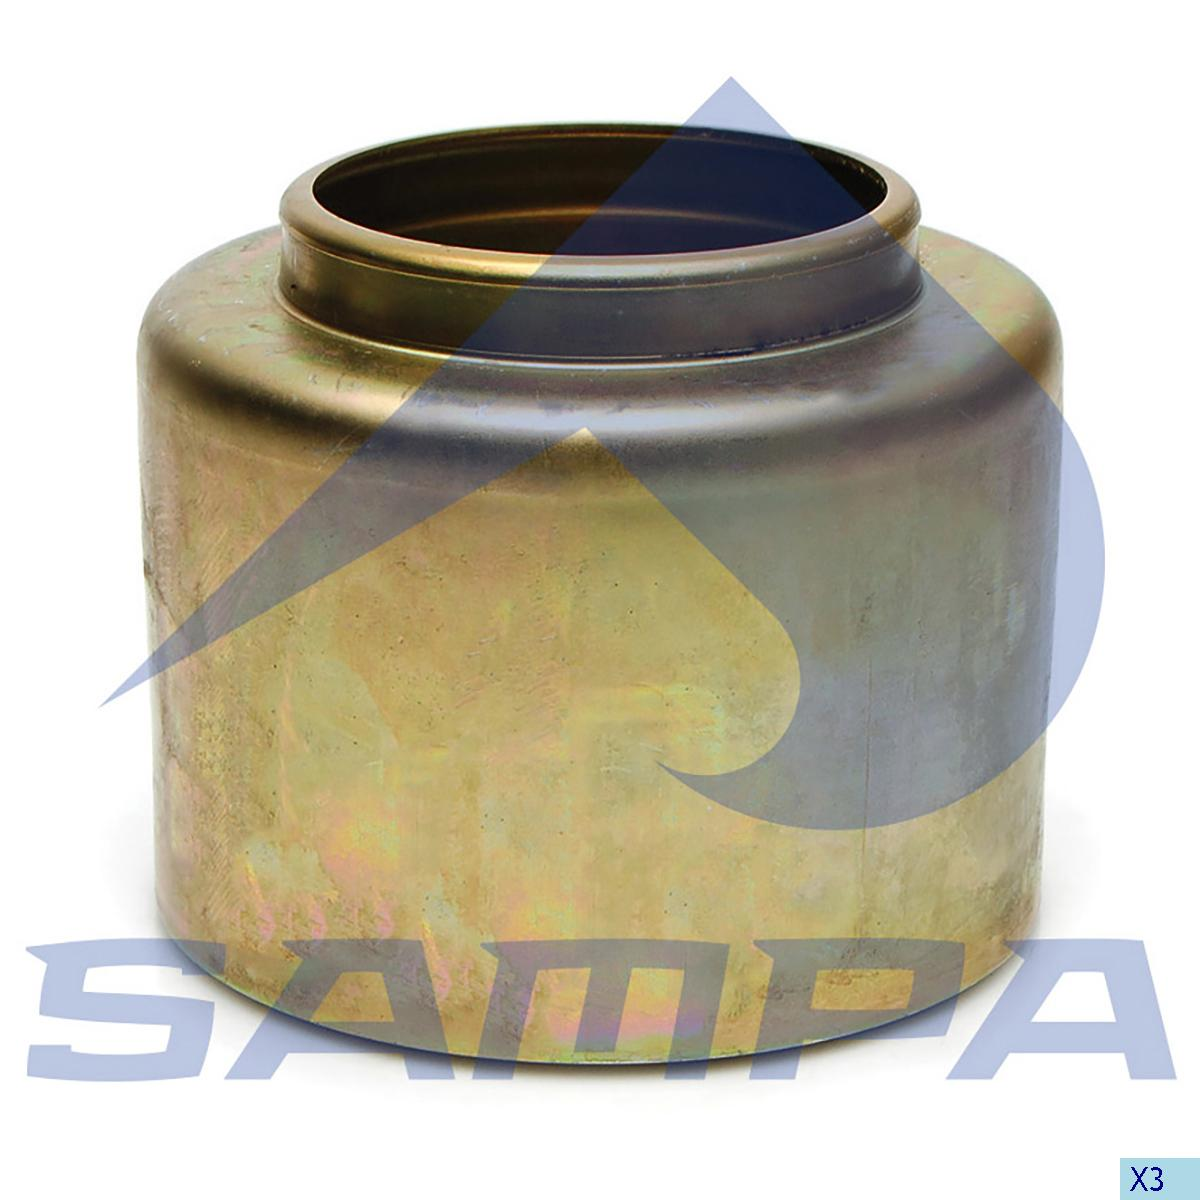 Piston, Air Spring, Daf, Suspension